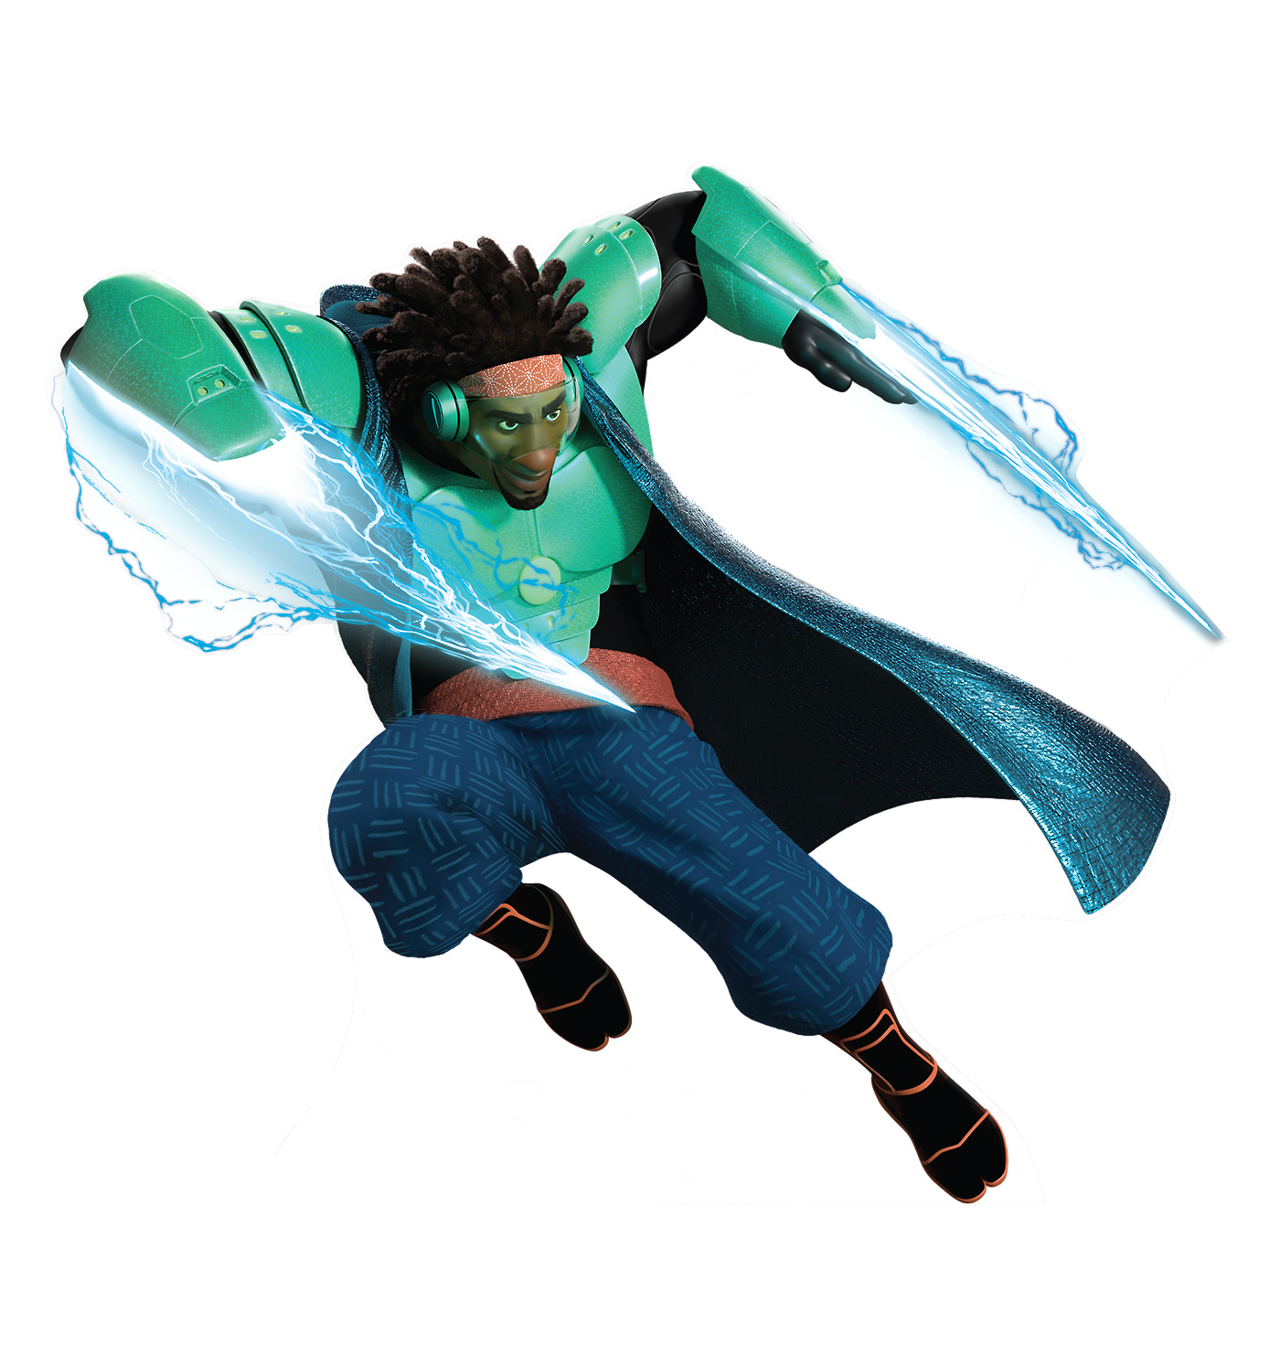 Character transparent big hero 6. Wasabi fictional characters wiki